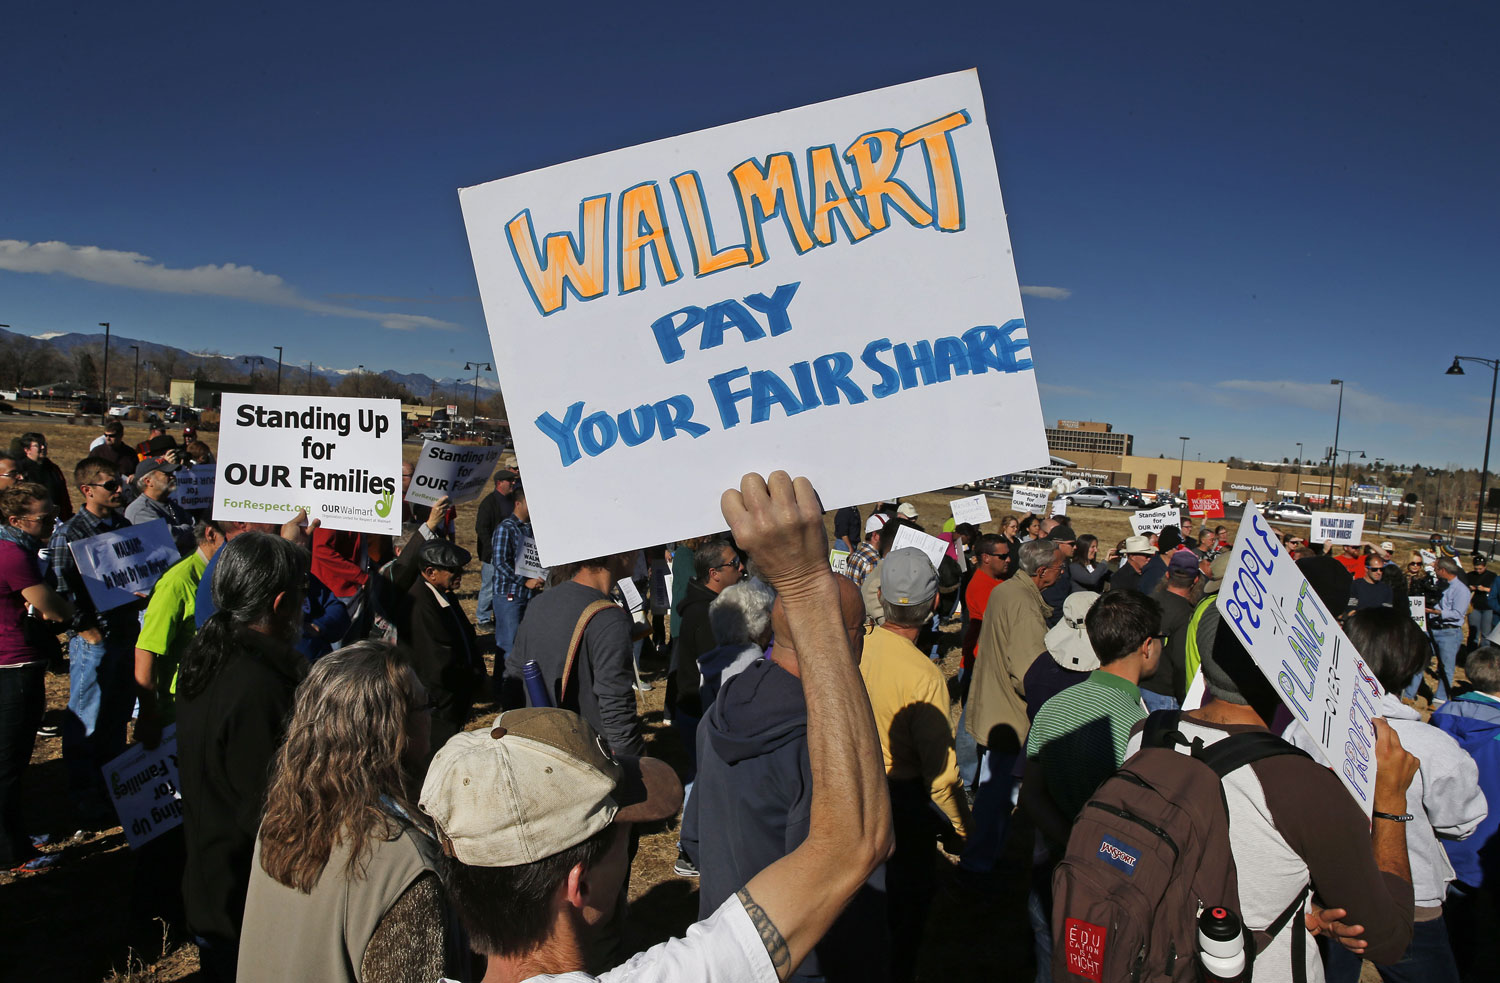 Colorado-Walmart-employees-and-supporters-protest-in-front-of-a-Walmart-store-in-Lakewood-Colo.-Friday-Nov.-29-2013.-AP-PhotoBrennan-Linsley